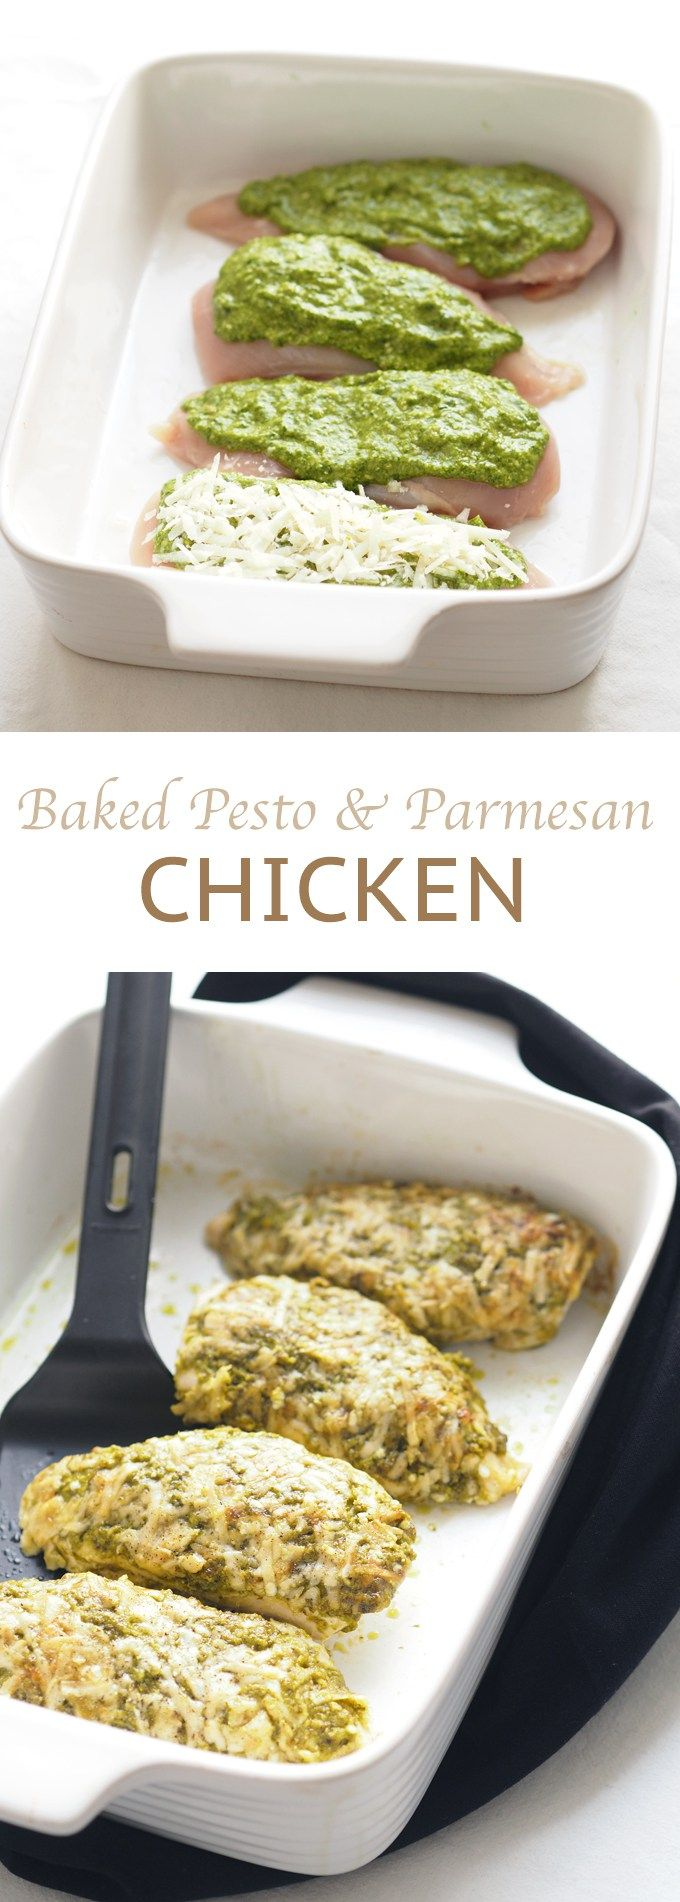 Delicious and healthy baked pesto parmesan chicken, quick and no carbs.